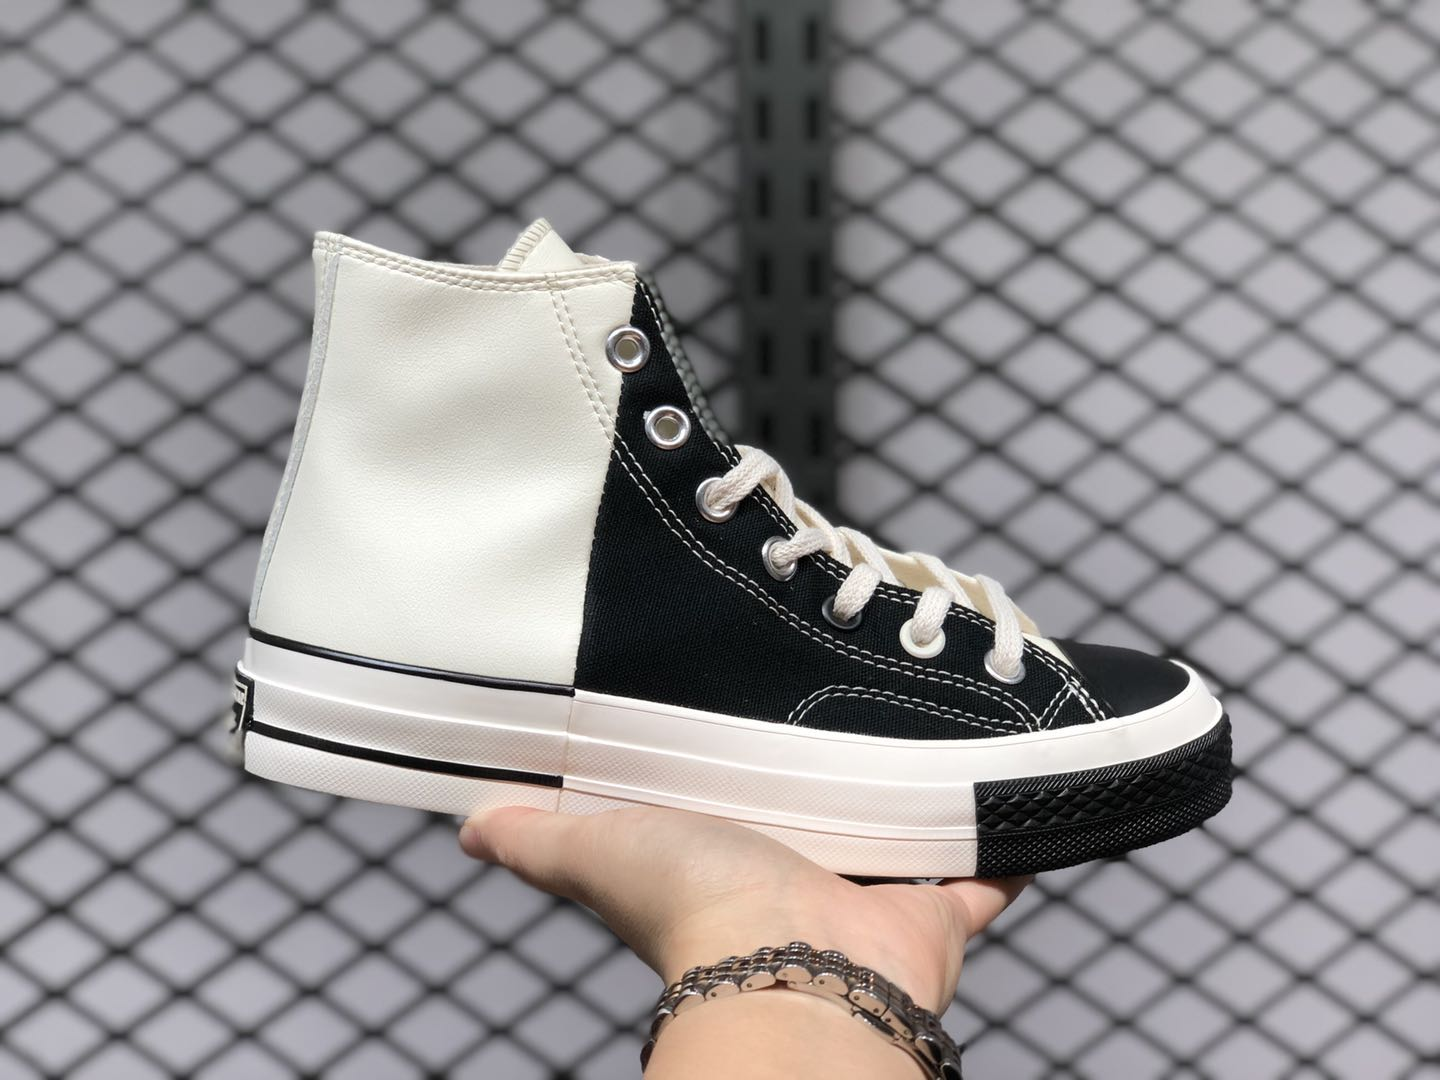 New Converse Chuck All Star Black White Canvas Shoes 168623C ...